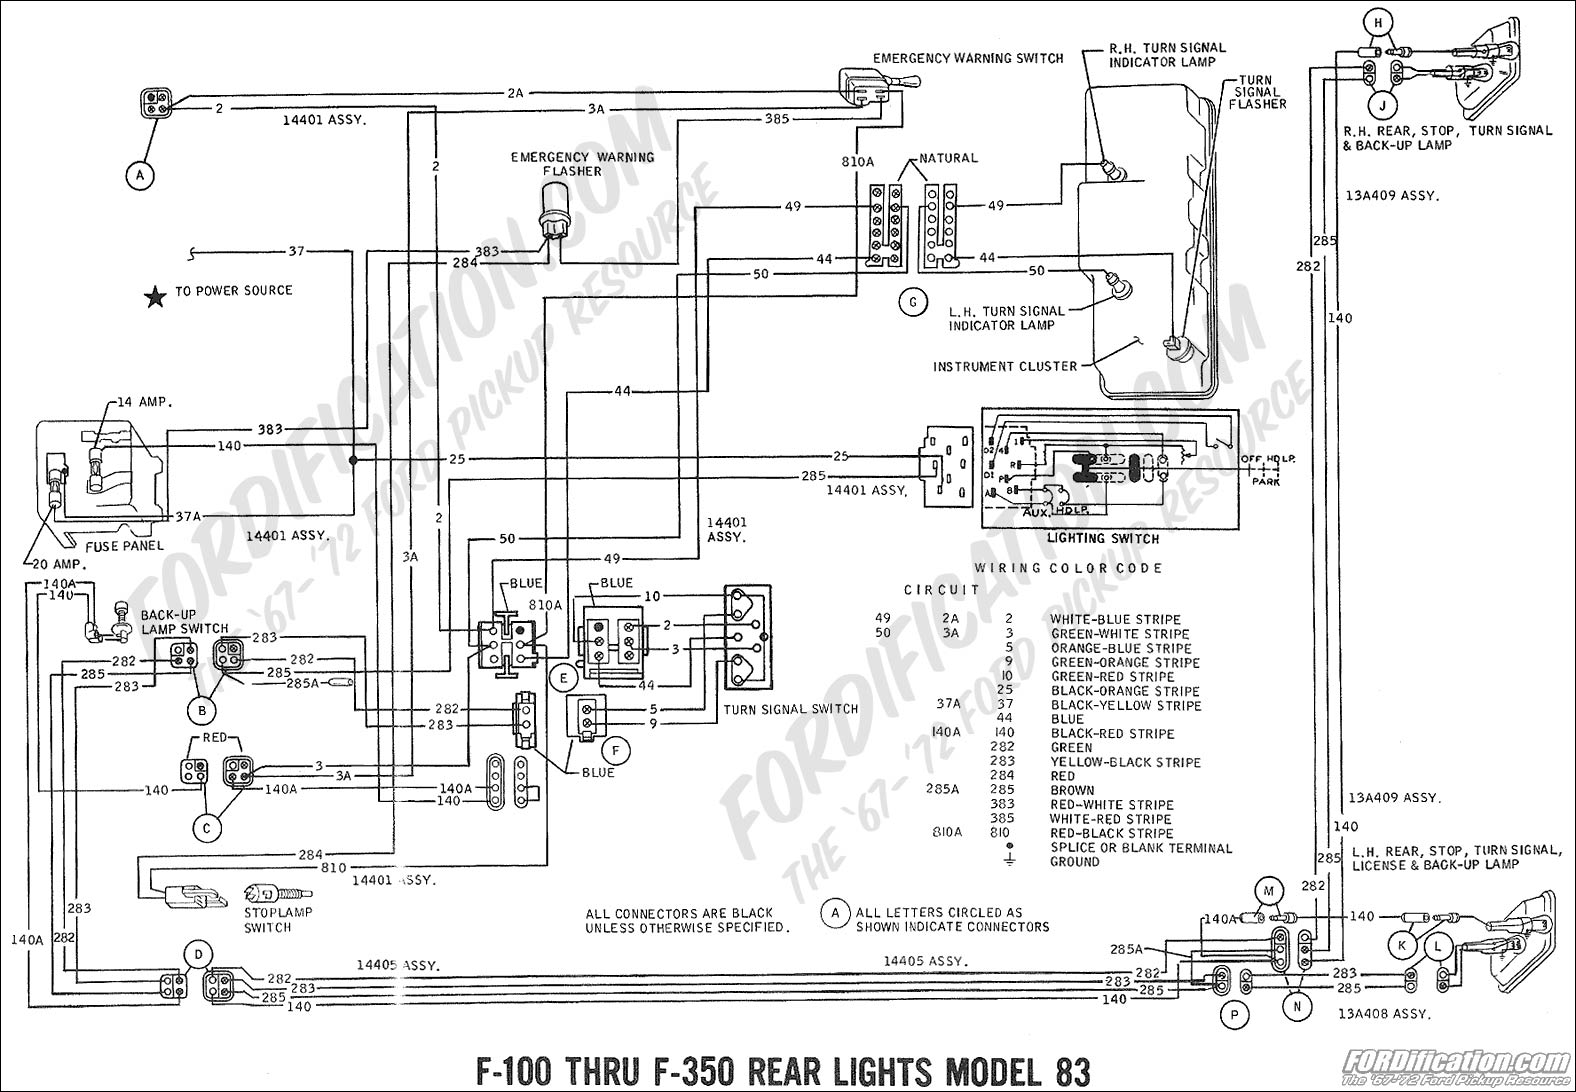 wiring_69rearlights mdl83 2 ford truck technical drawings and schematics section h wiring EZ Wiring Harness Diagram Chevy at virtualis.co